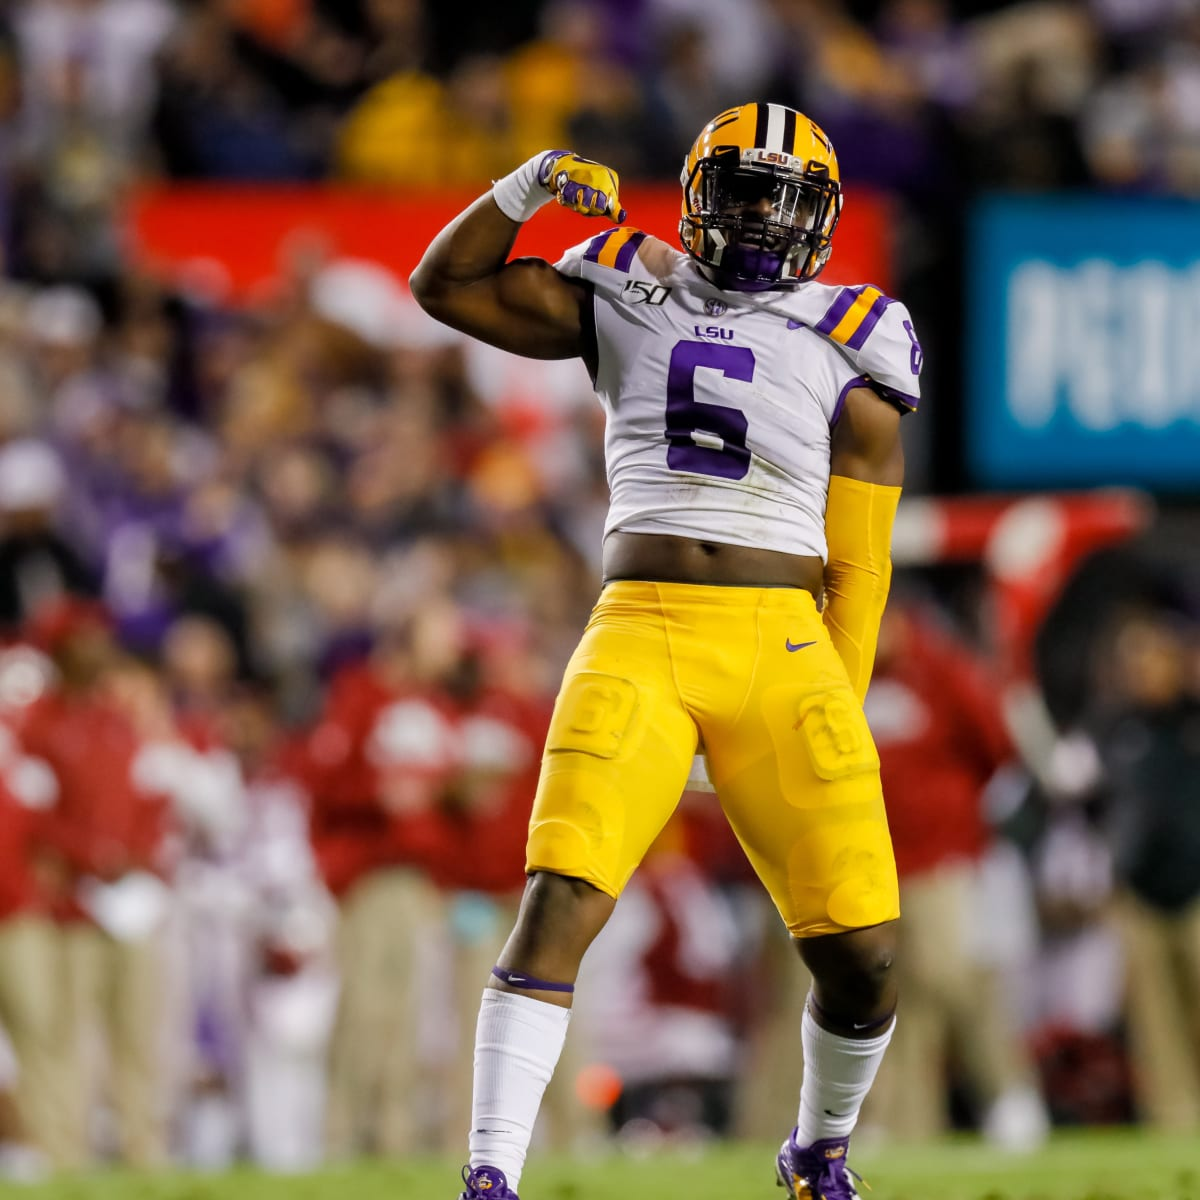 Road to the Pros: LSU Linebacker Jacob Phillips Possesses Tools to ...